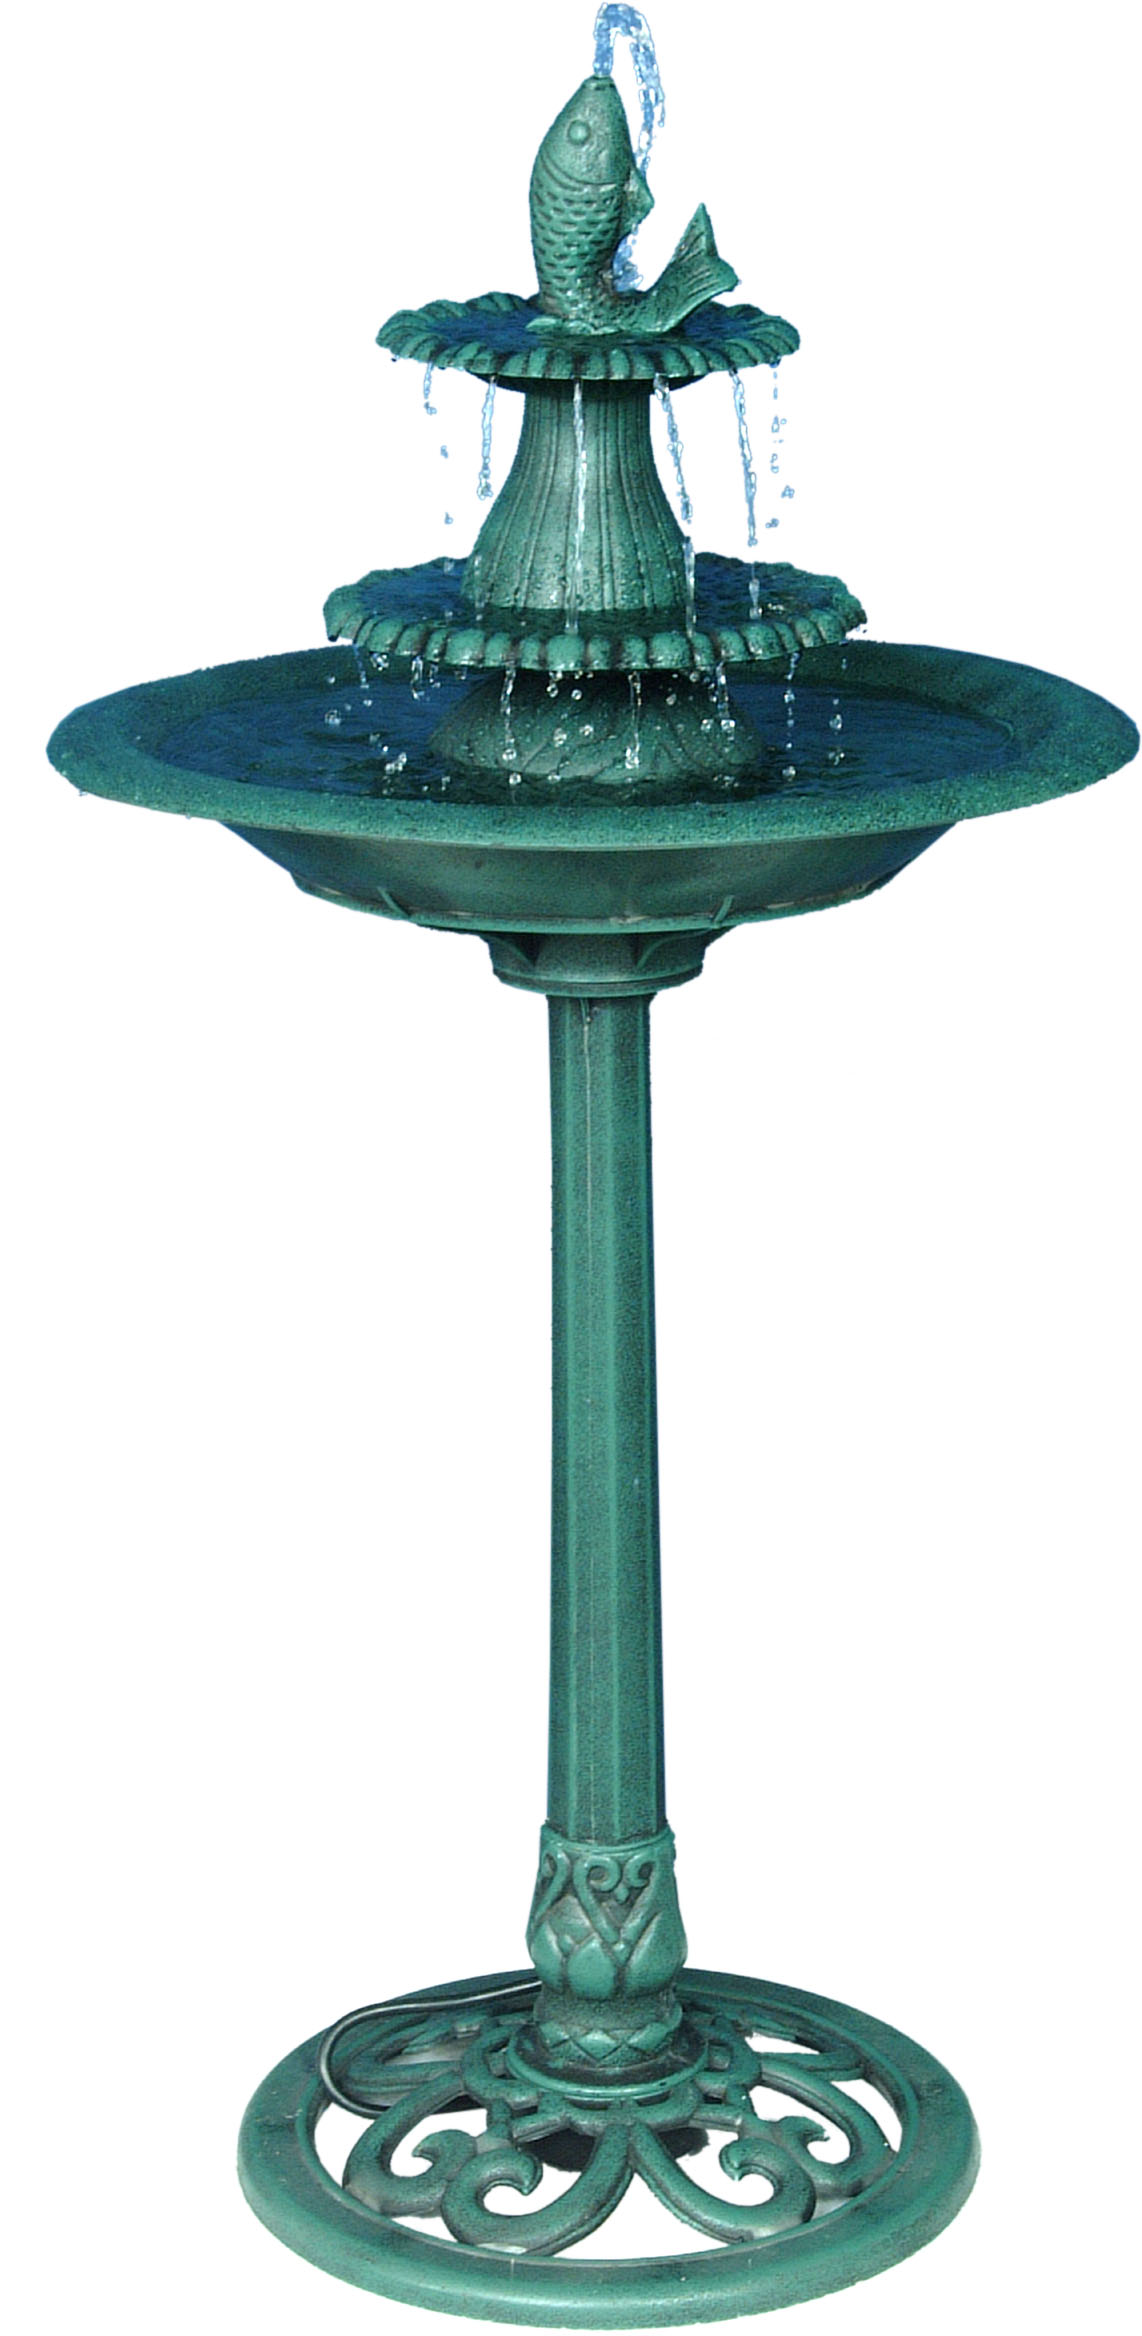 41 Inch Tiered Pedestal Fish Fountain Birdbath by Benzara